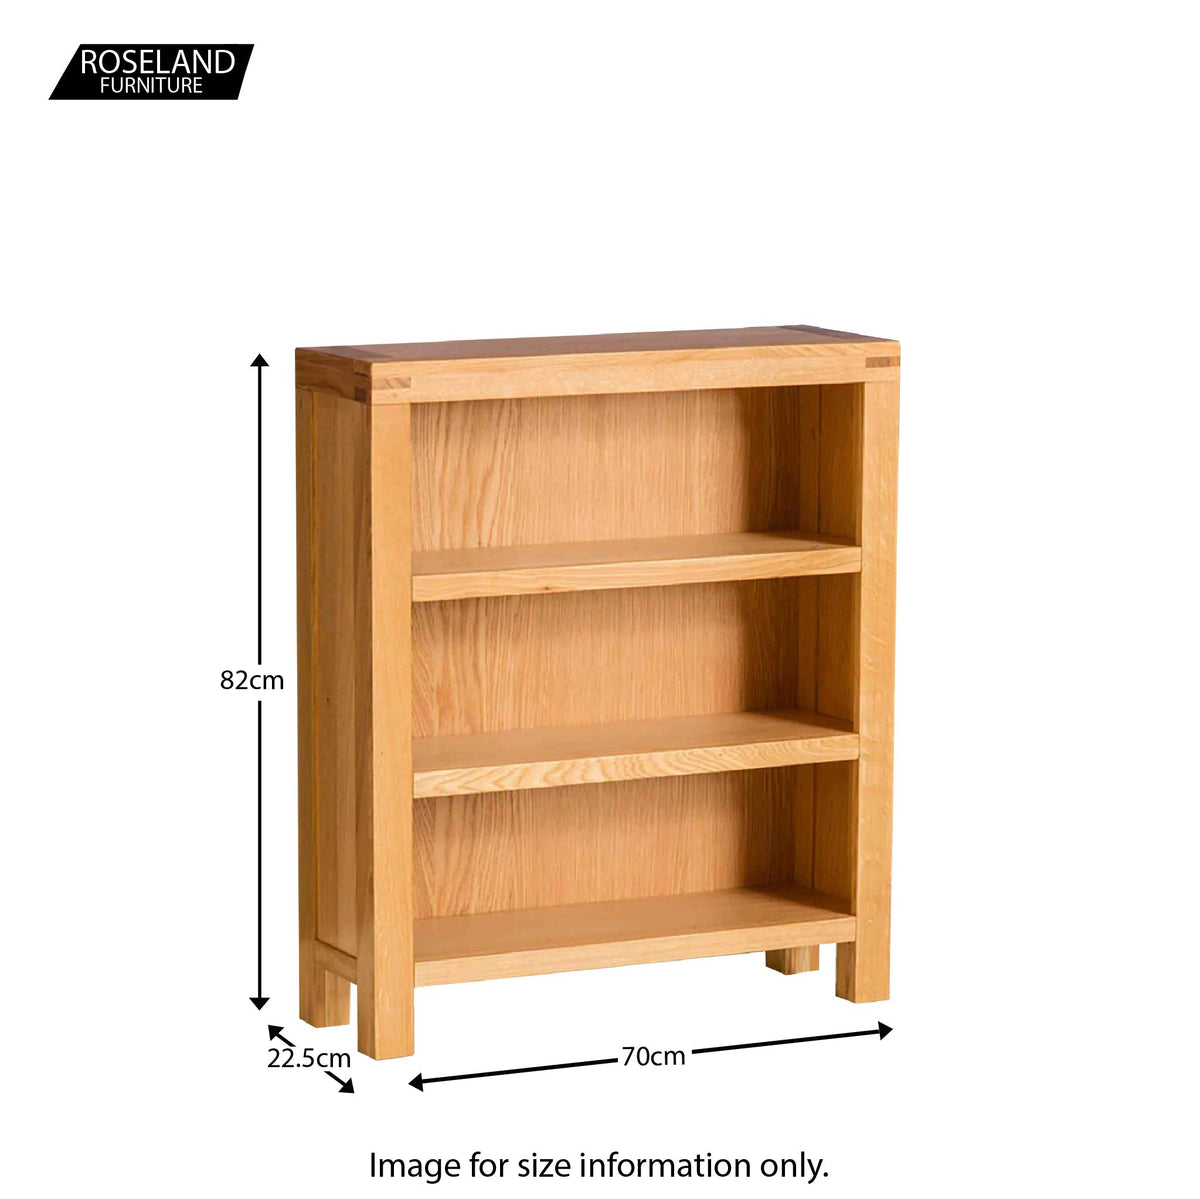 Abbey Light Oak Low Bookcase - Size guide